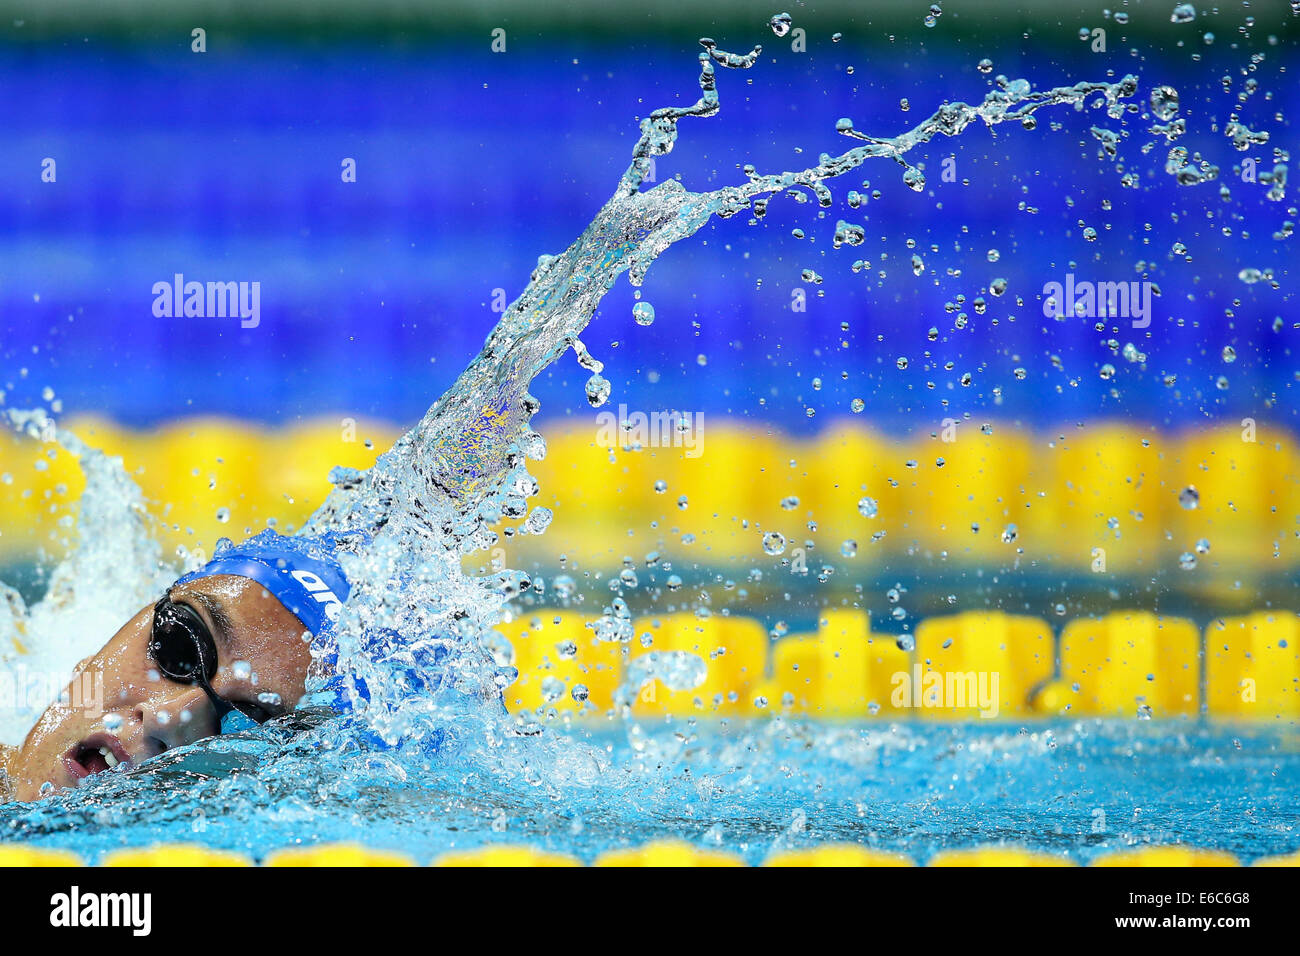 Berlin, Germany. 20th Aug, 2014. Anna-Marie Benesova of the Czech Republic competes in the women's 800m Freestyle - Stock Image